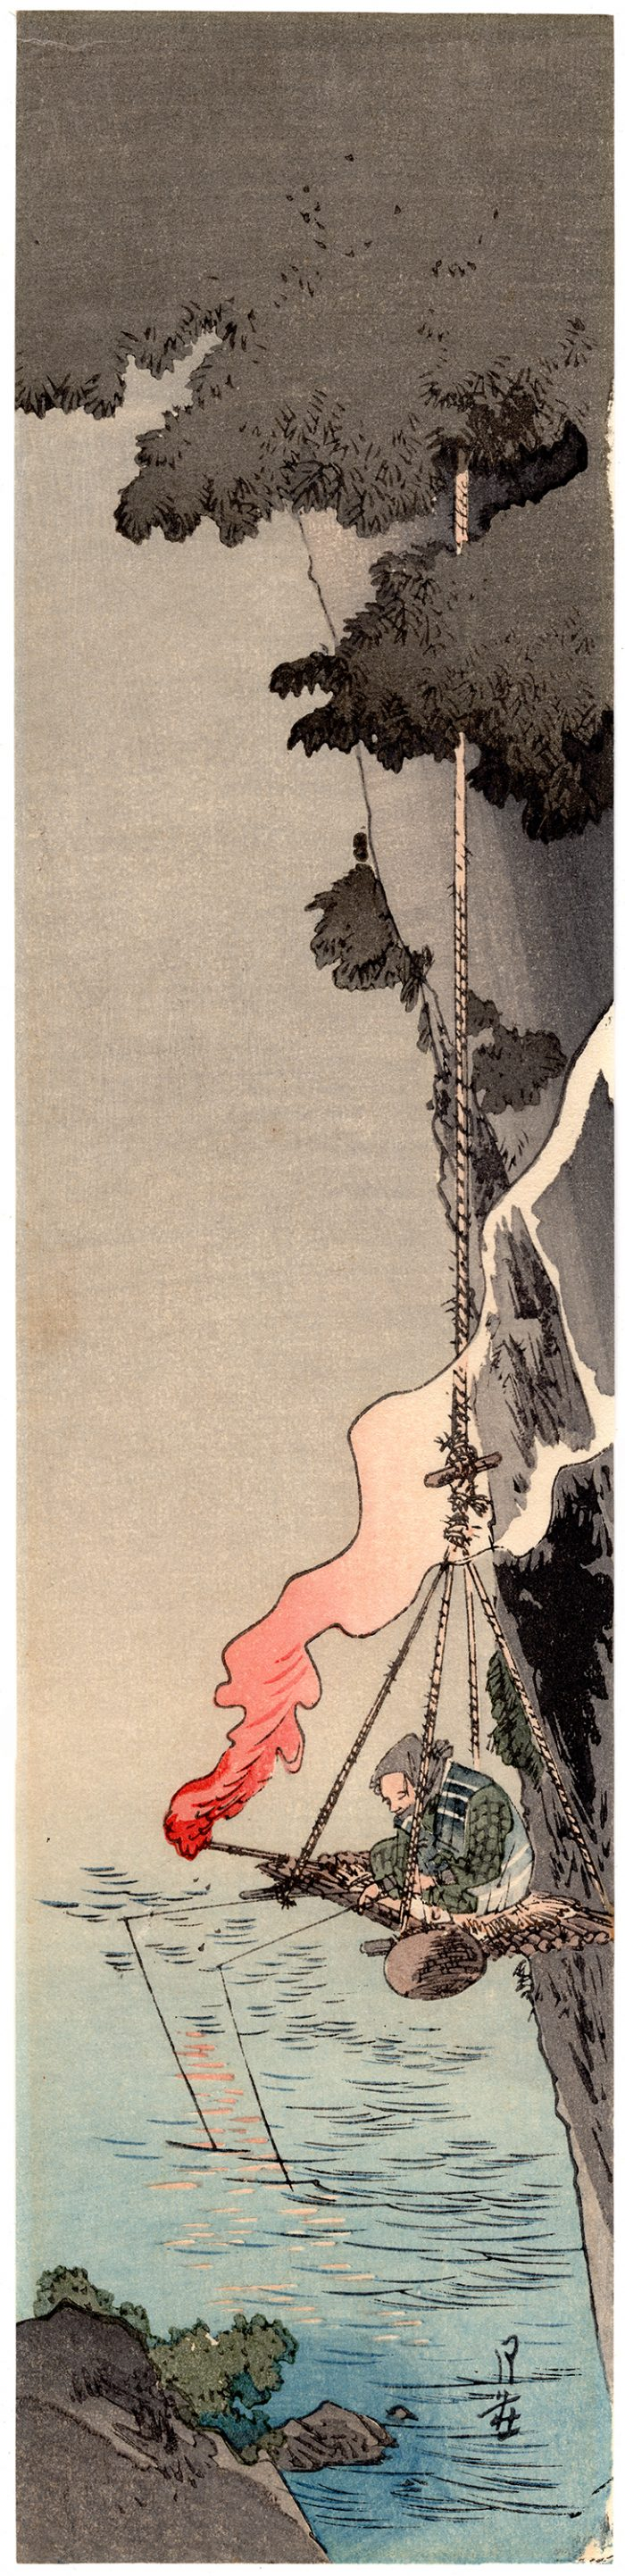 Yoshimoto Gesso - Man with fire on a cliff